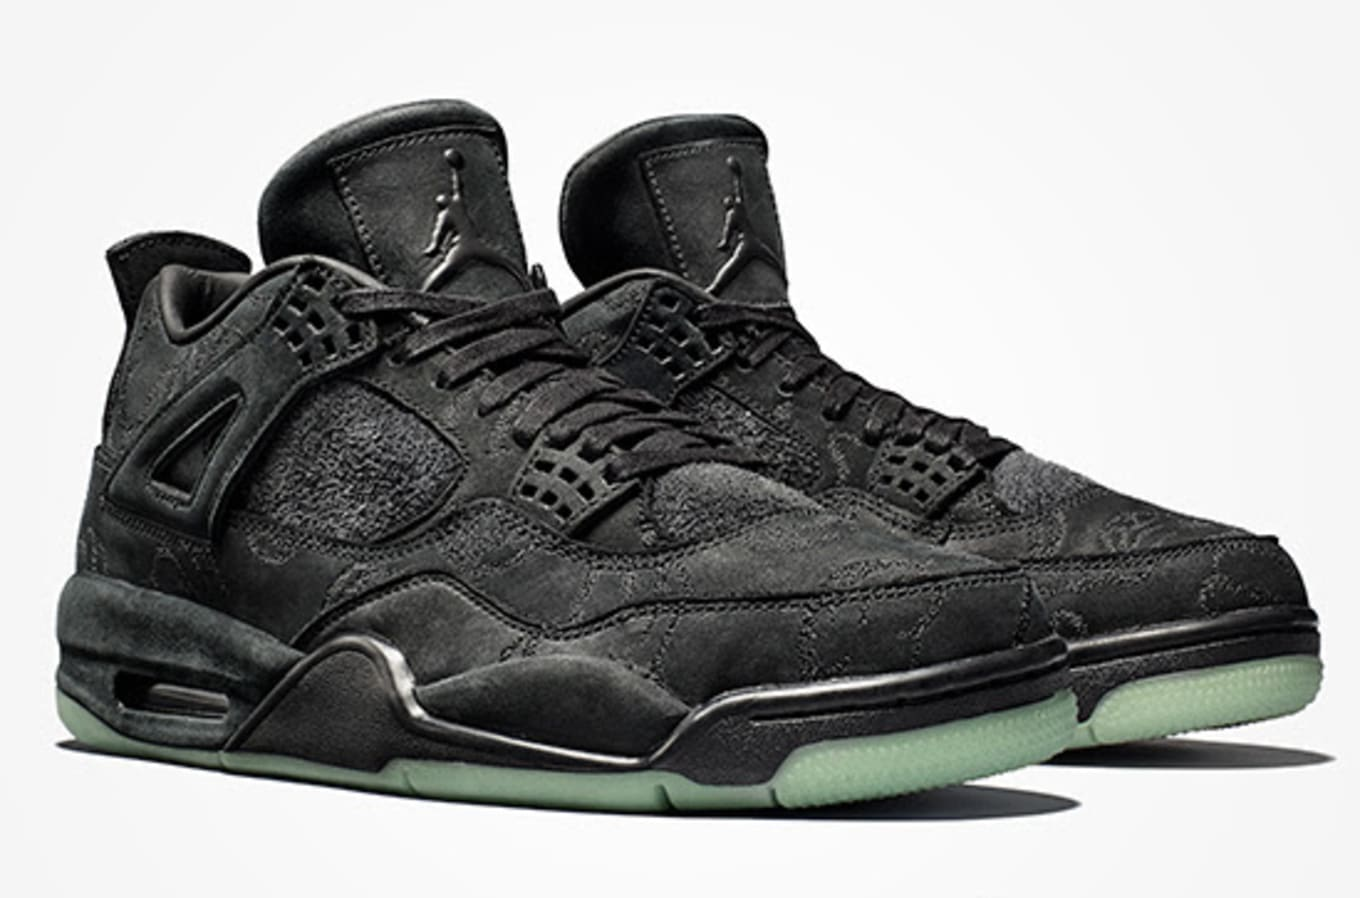 newest 0941c 3a2d0 Air Jordan 4 (IV). Image via Nike